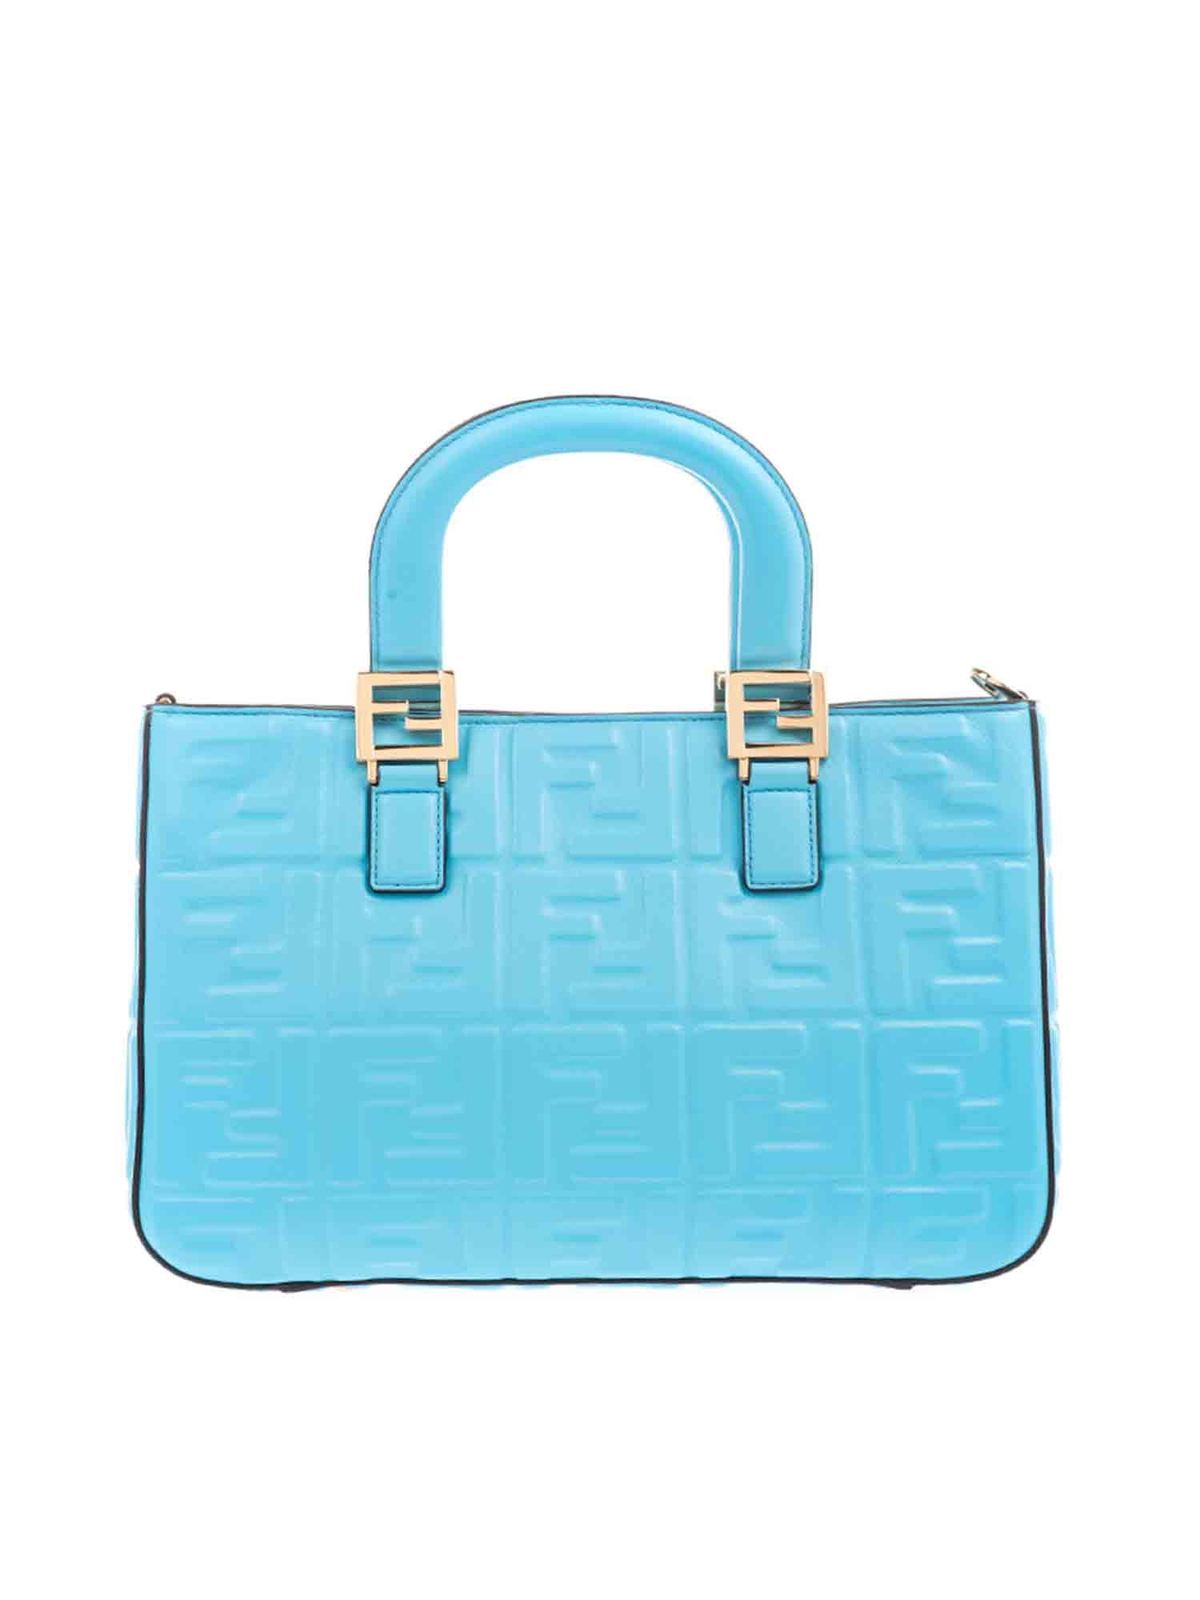 Fendi Leathers FF LOGO TEXTURED SMALL TOTE BAG IN TURQUOISE